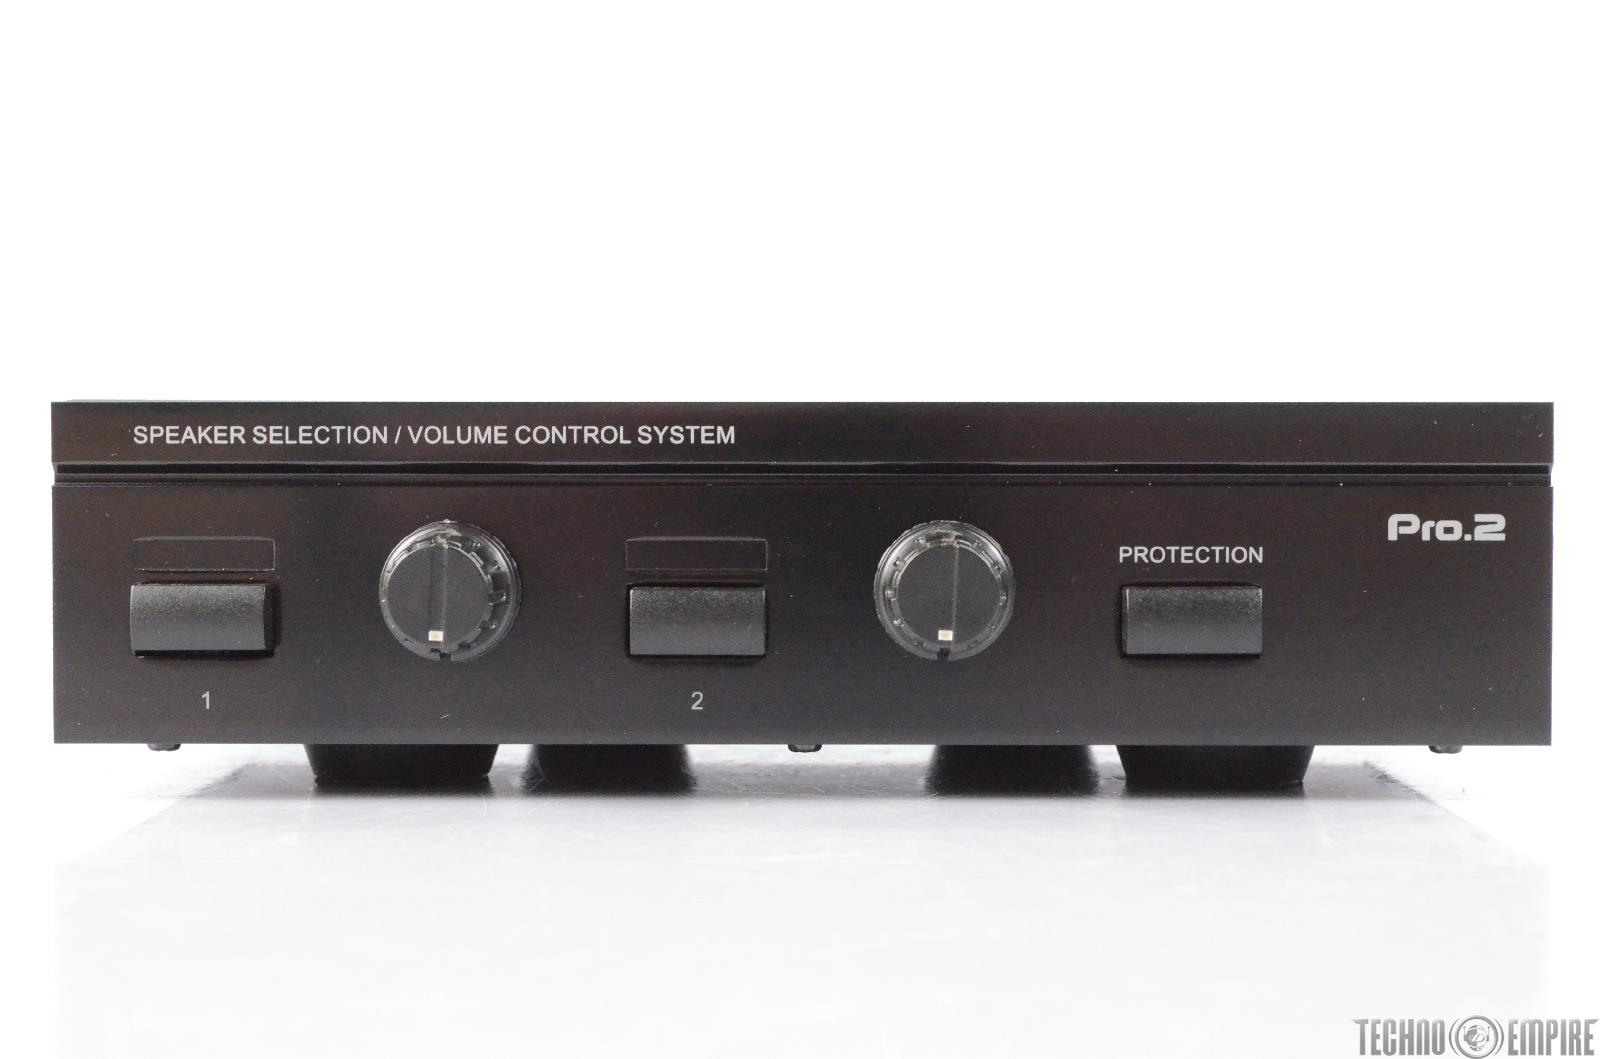 Pro2 SPS2A 2-Way Stereo Speaker Selector Switch w/ Volume Control #29682